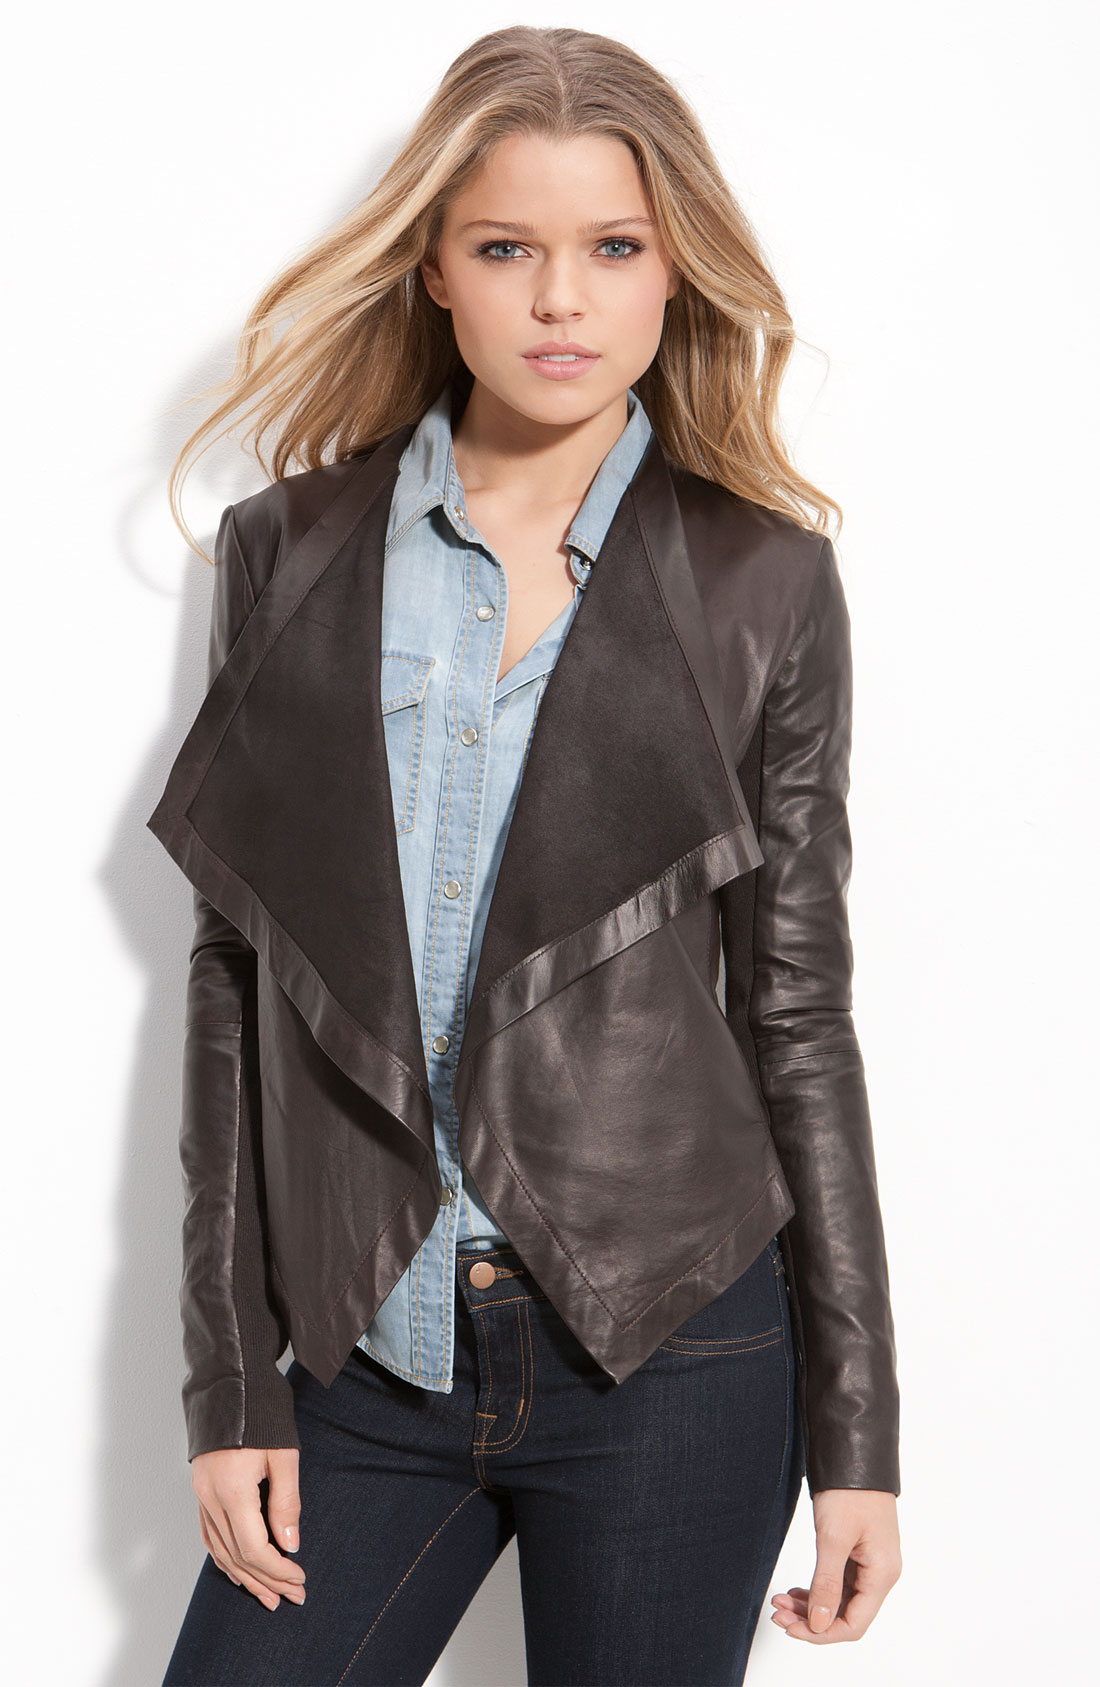 Waterfall leather jackets